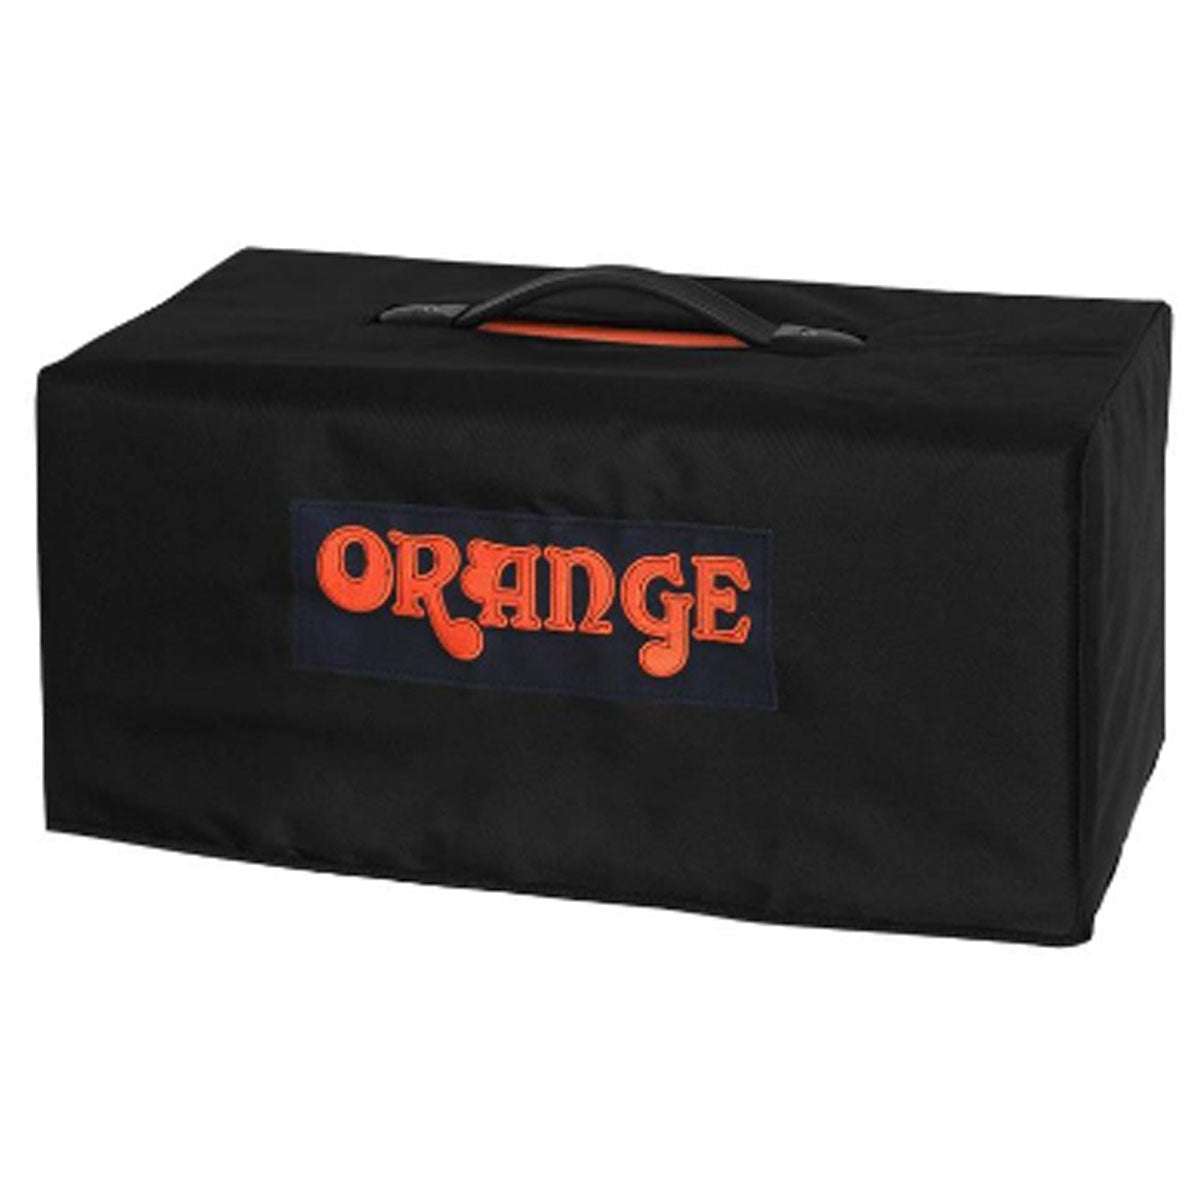 Orange Amplifier Cover 412 Cab Cover for 4x12inch Cabinet